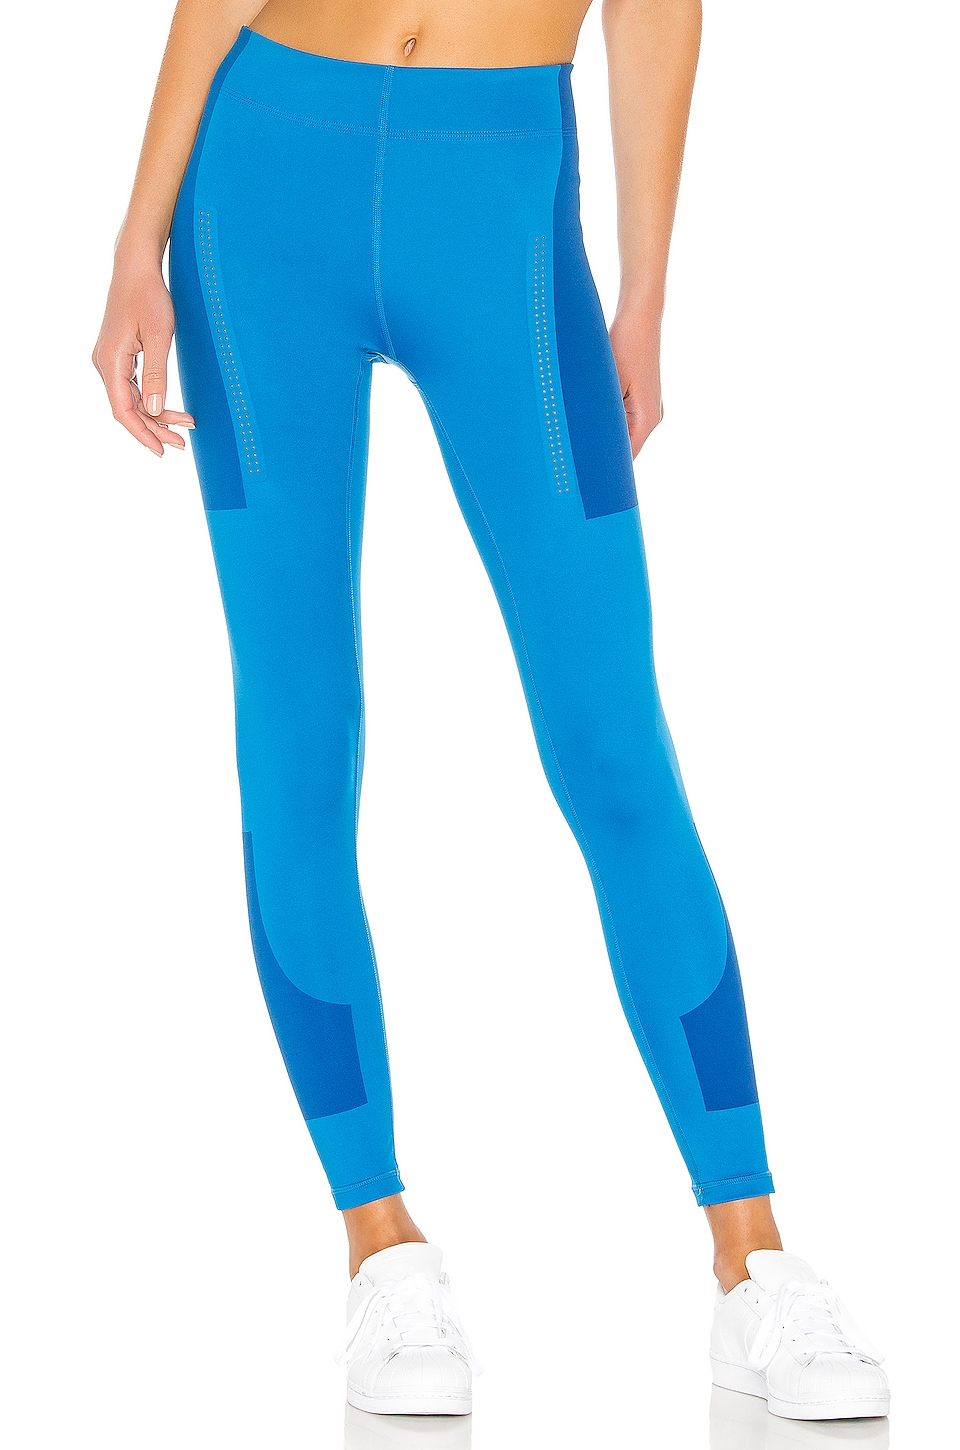 adidas by Stella McCartney Train Legging in Craft Blue